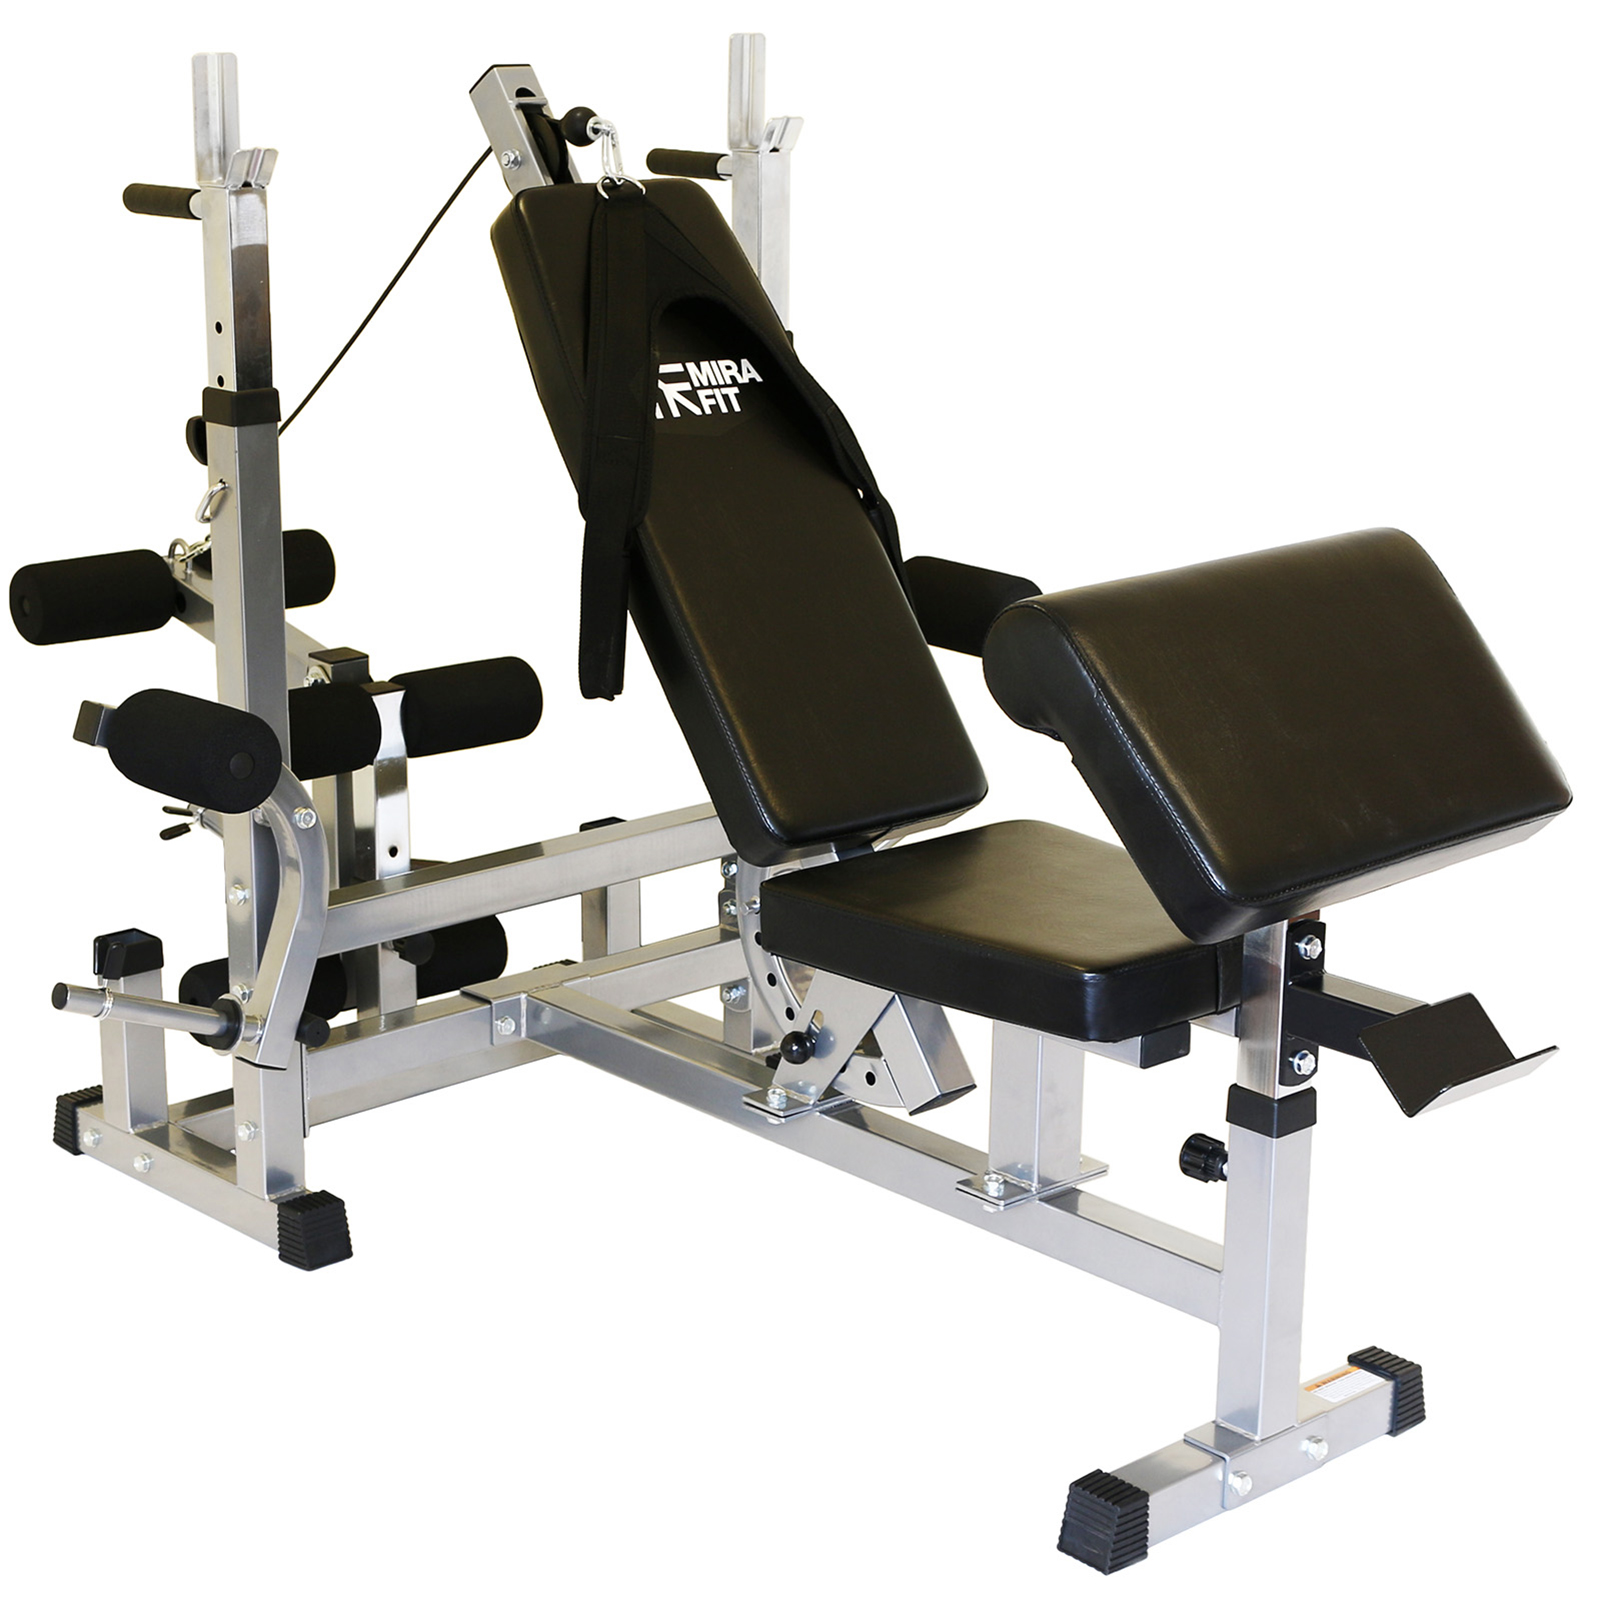 Cheap Weights Bench 28 Images Cheap Weight Benches With Weights Sofas And Chairs Weights